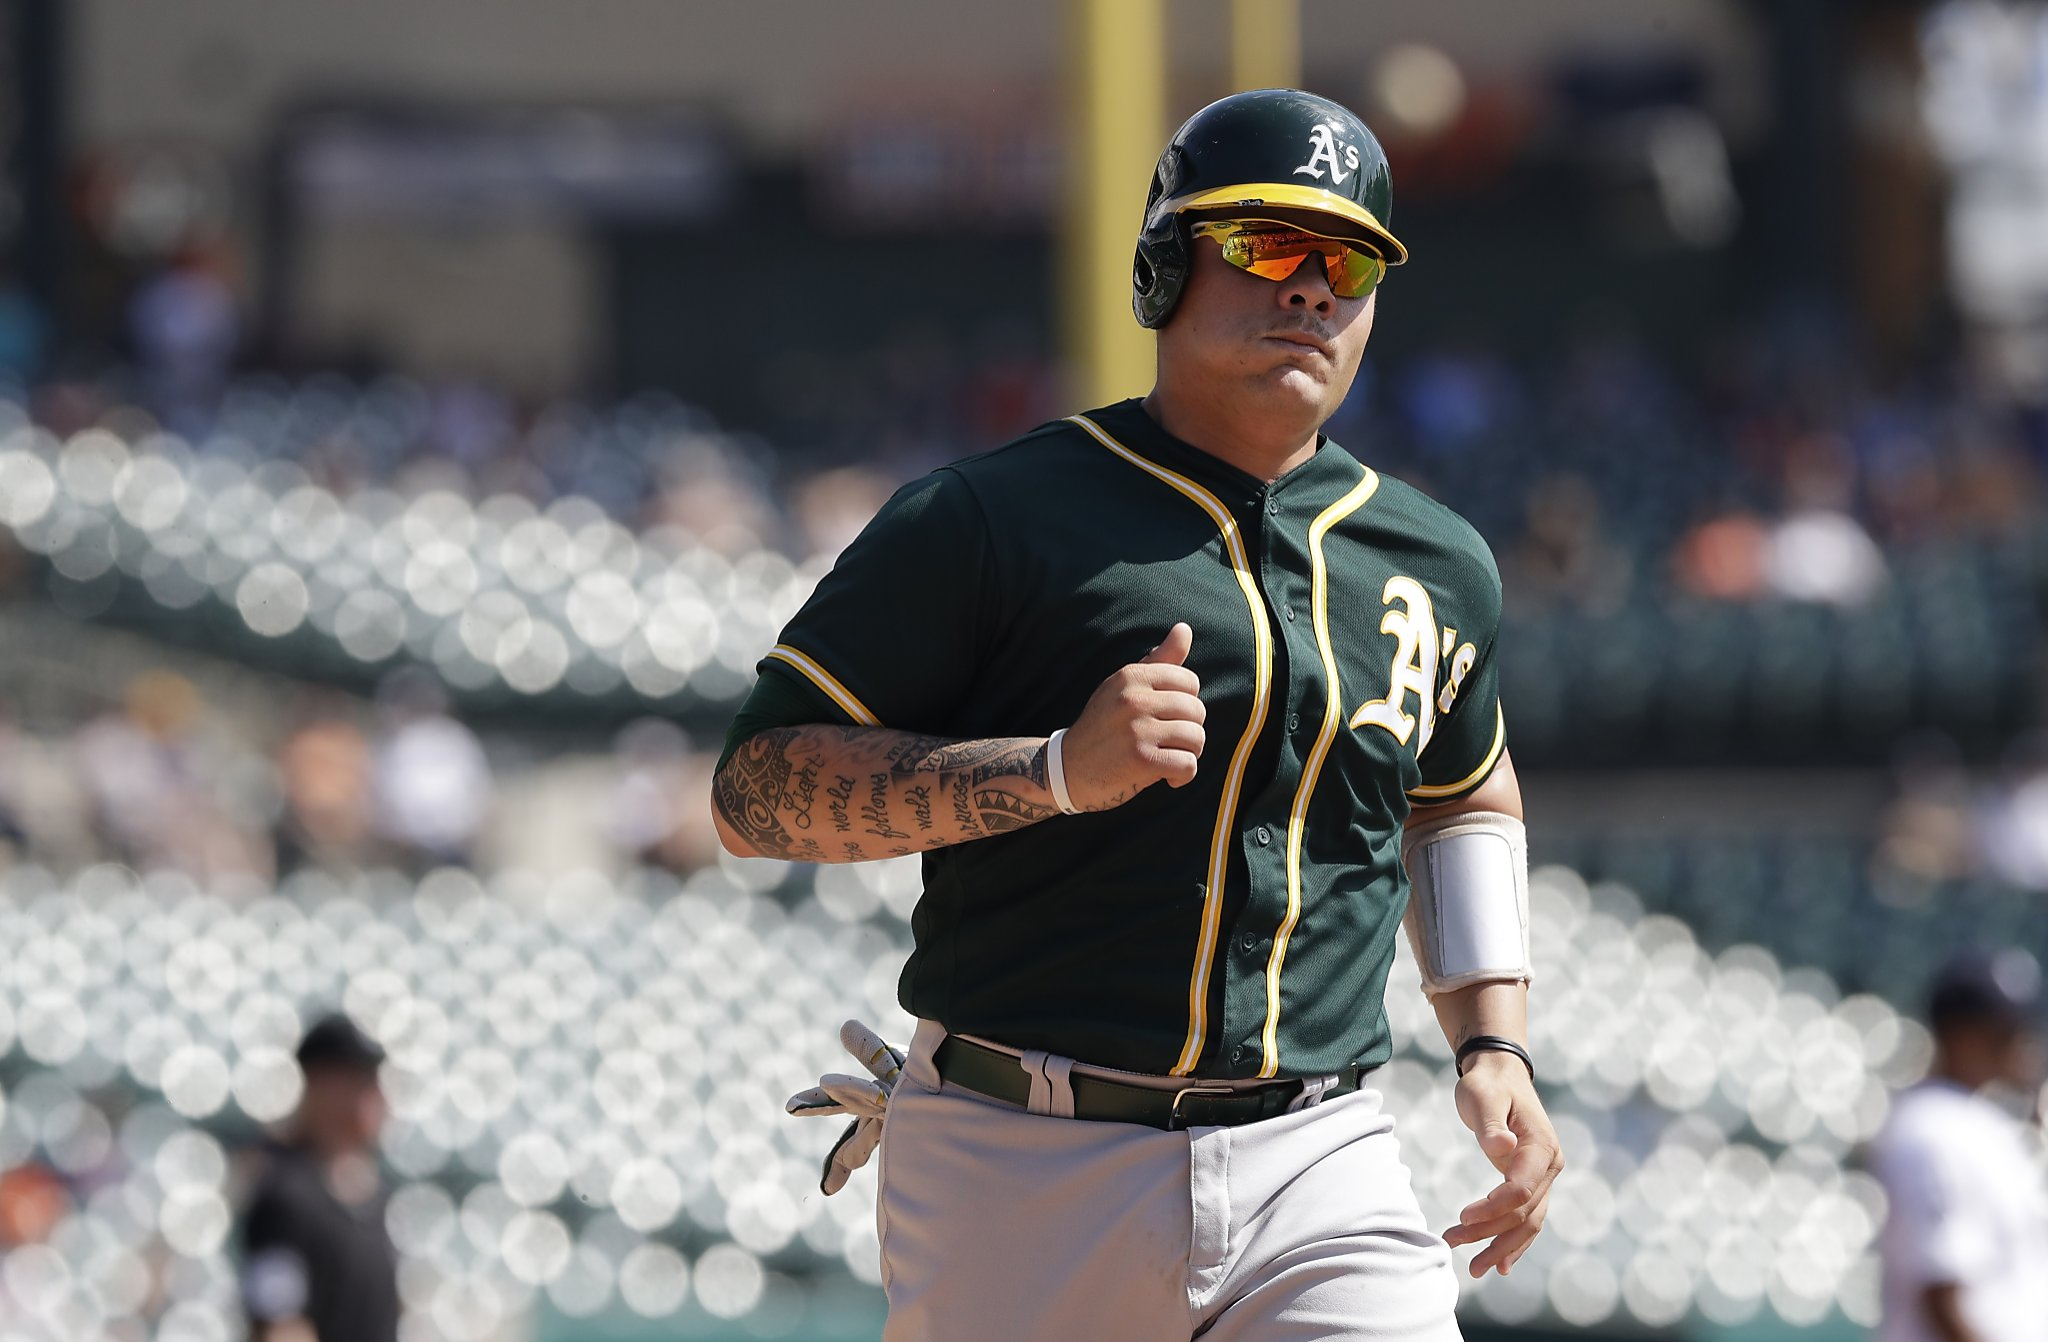 sfchronicle.com - Susan Slusser - A's Bruce Maxwell first MLB player to kneel for anthem